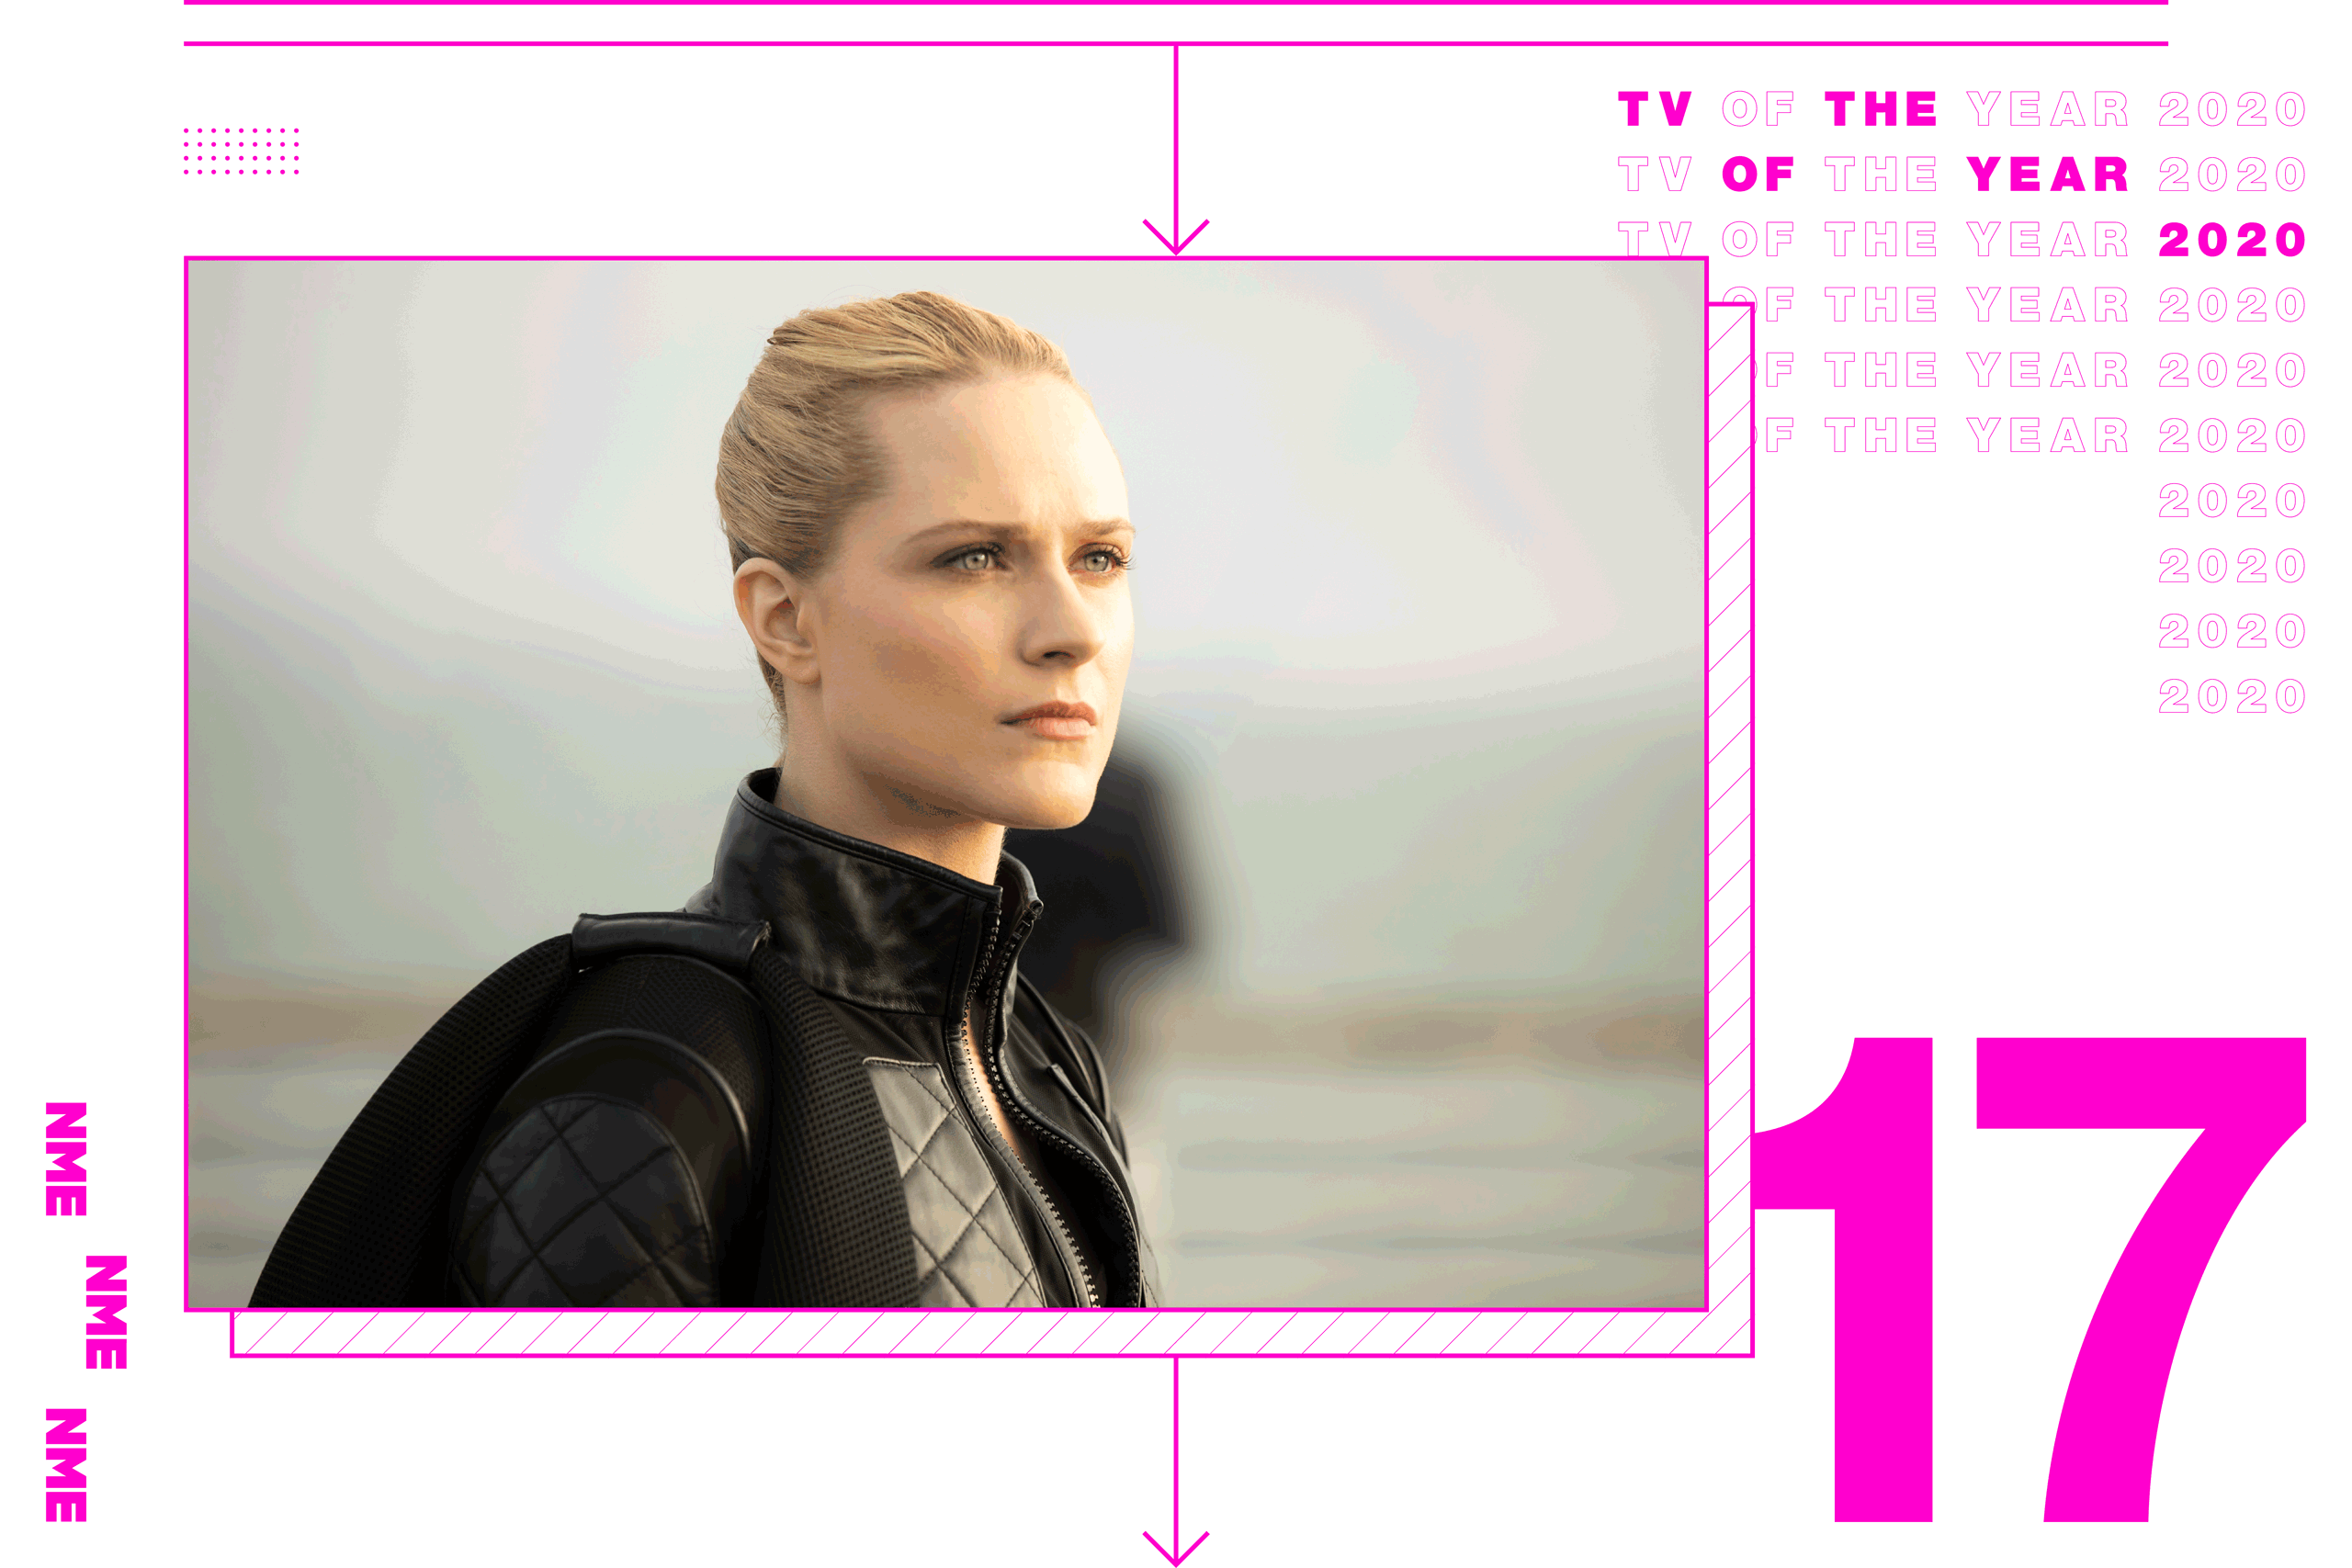 Tv Show of the year Westworld